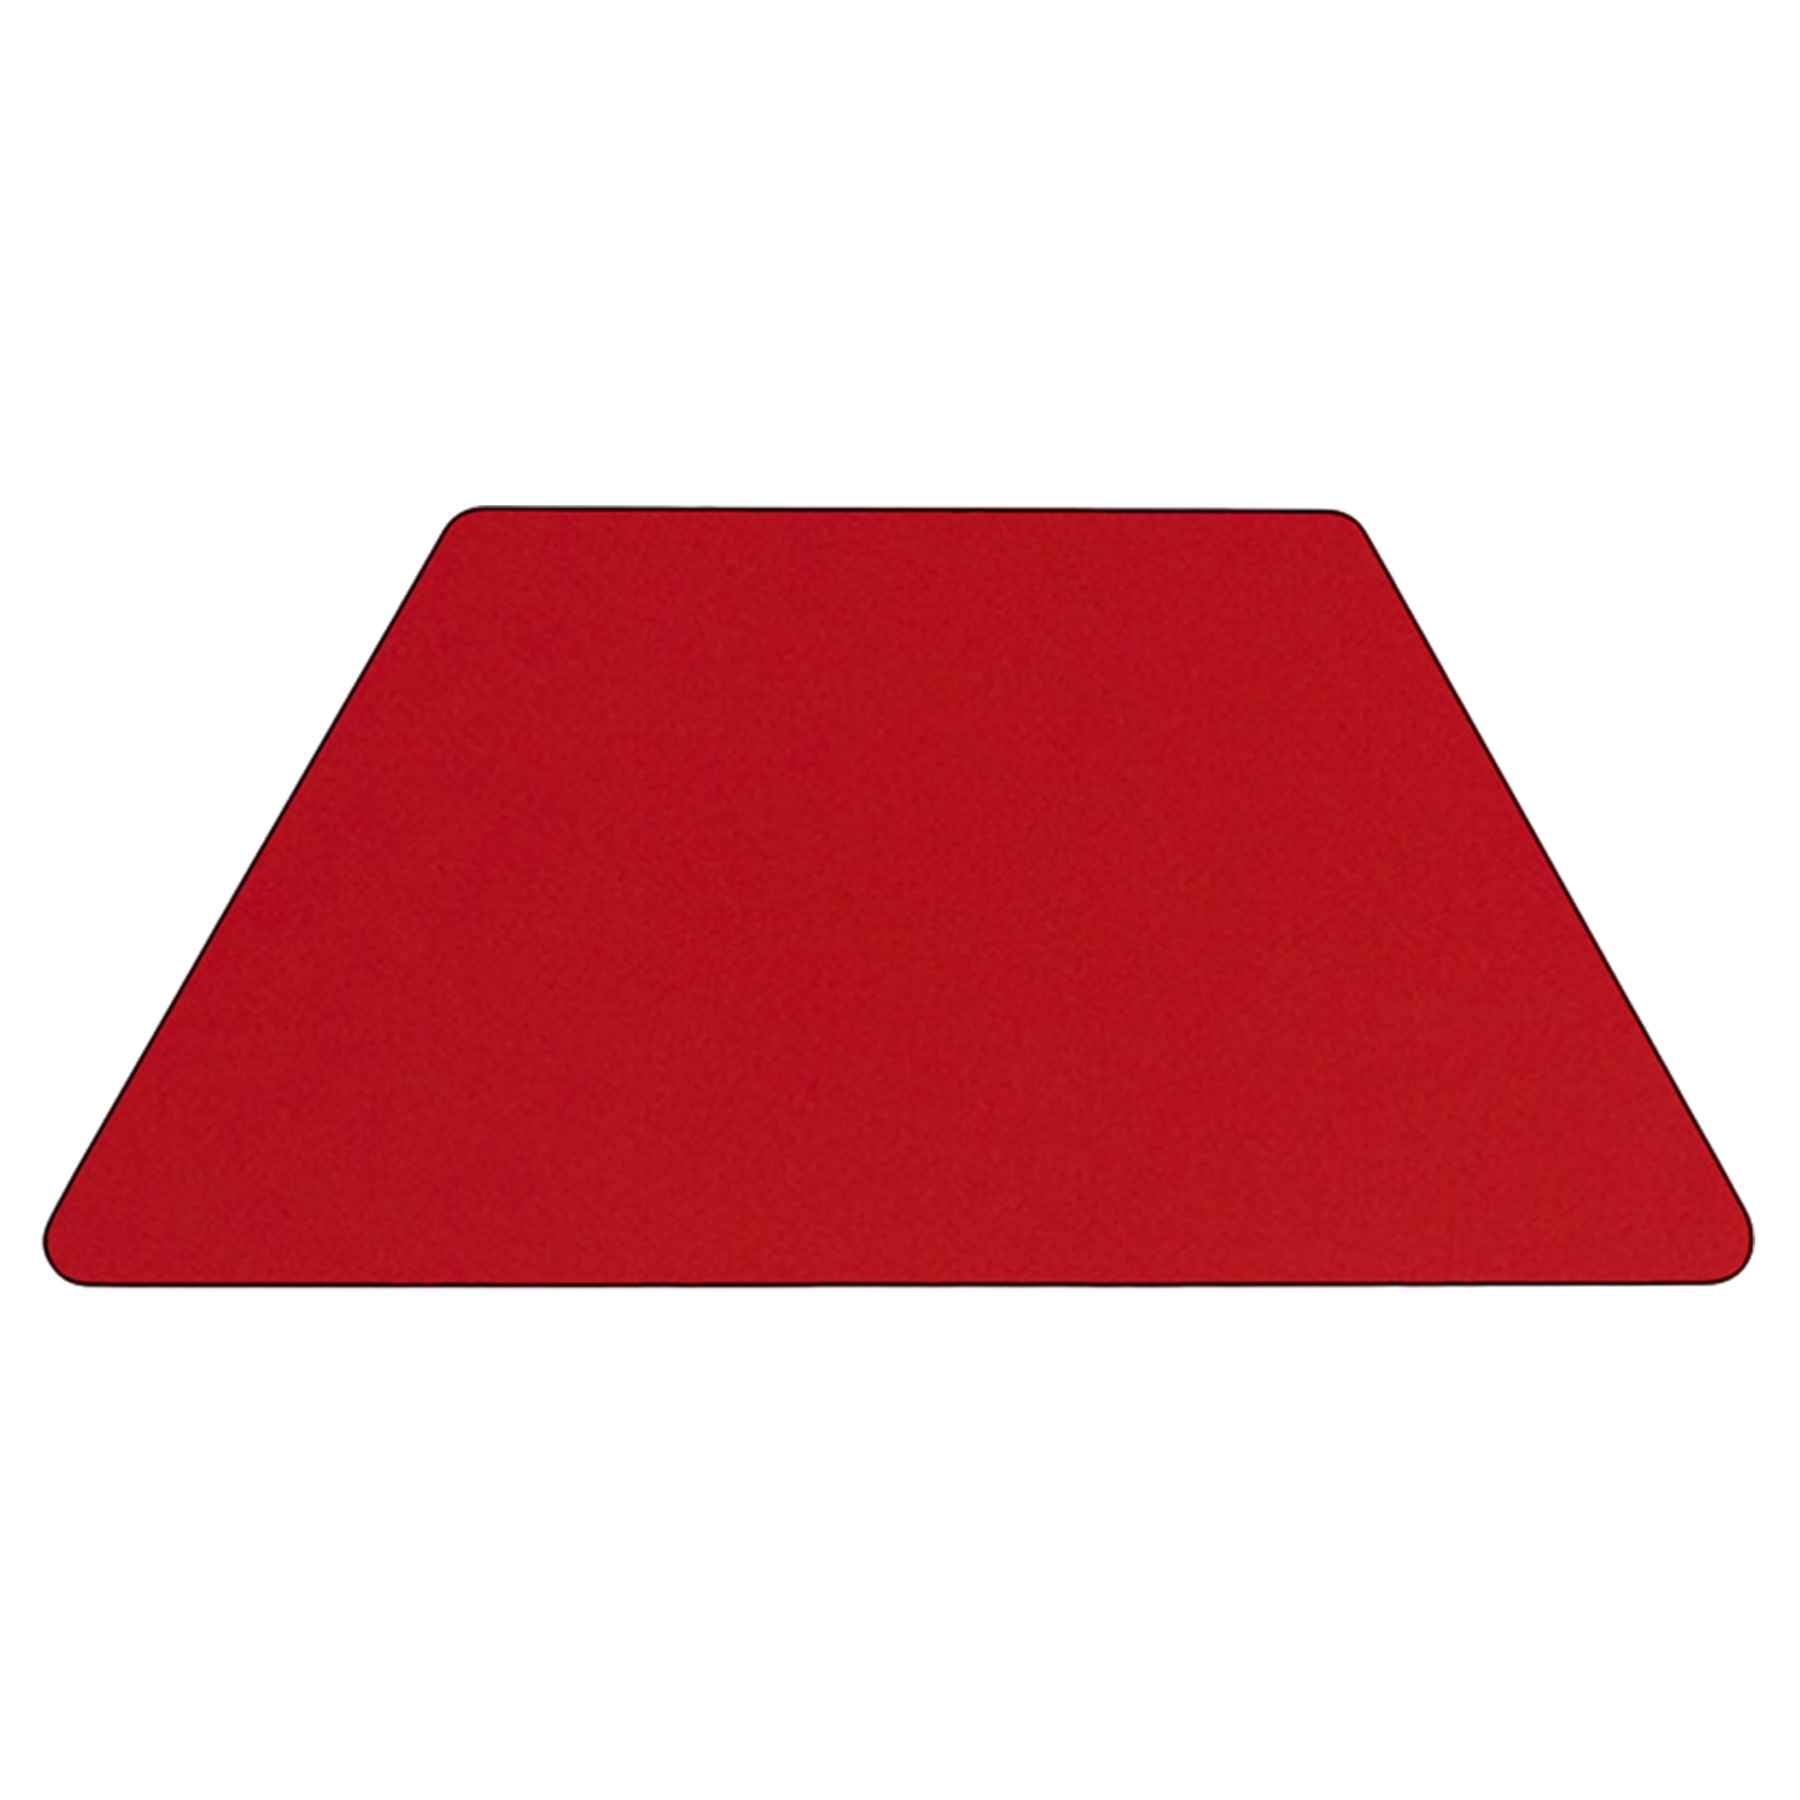 medium resolution of mobile 24 quot x 48 quot trapezoid preschool activity table red